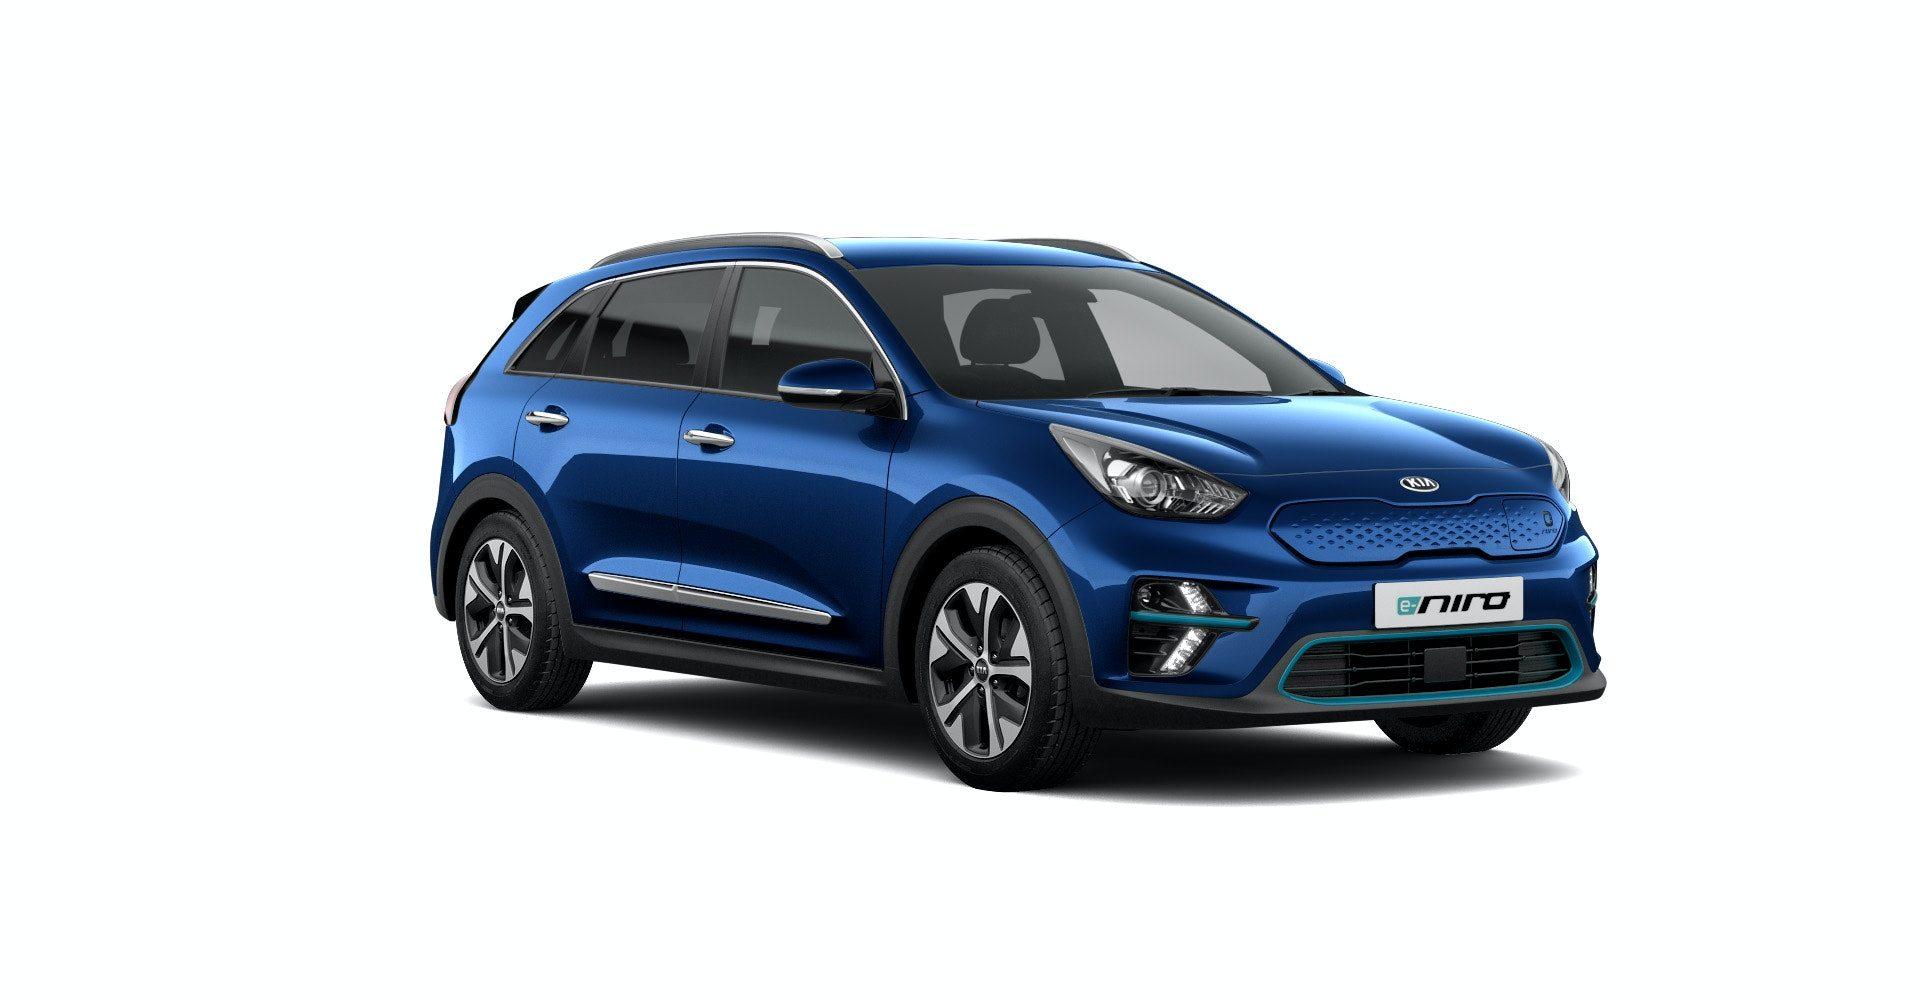 Kia introduces entry-level e-Niro thats costs less than £30,000